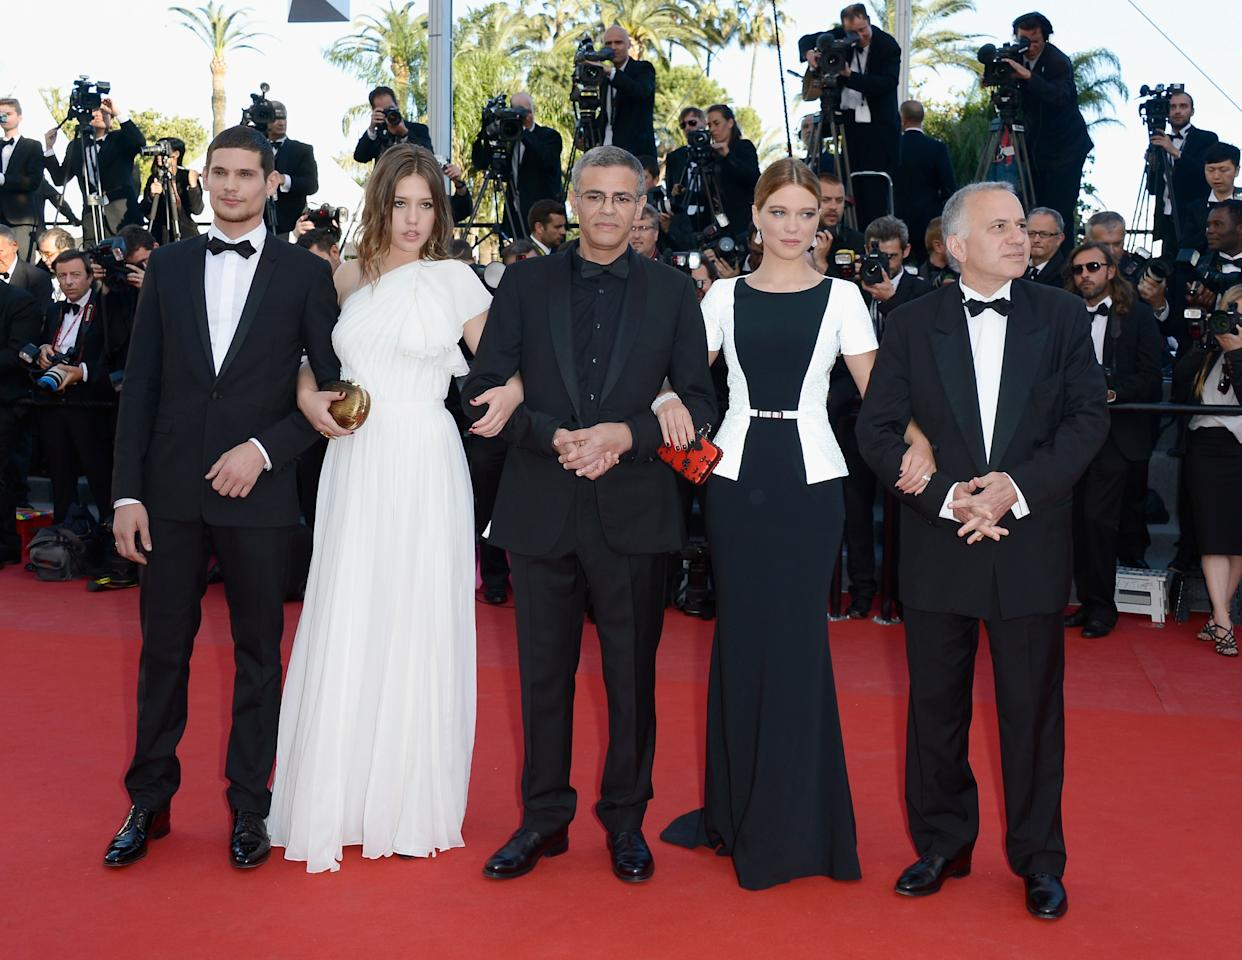 CANNES, FRANCE - MAY 26:  Actors Jeremie Laheurte, Adele Exarchopoulos, director Abdellatif Kechiche, actress Lea Seydoux and producer Brahim Chioua attend the 'Zulu' Premiere and Closing Ceremony during the 66th Annual Cannes Film Festival at the Palais des Festivals on May 26, 2013 in Cannes, France.  (Photo by Pascal Le Segretain/Getty Images)